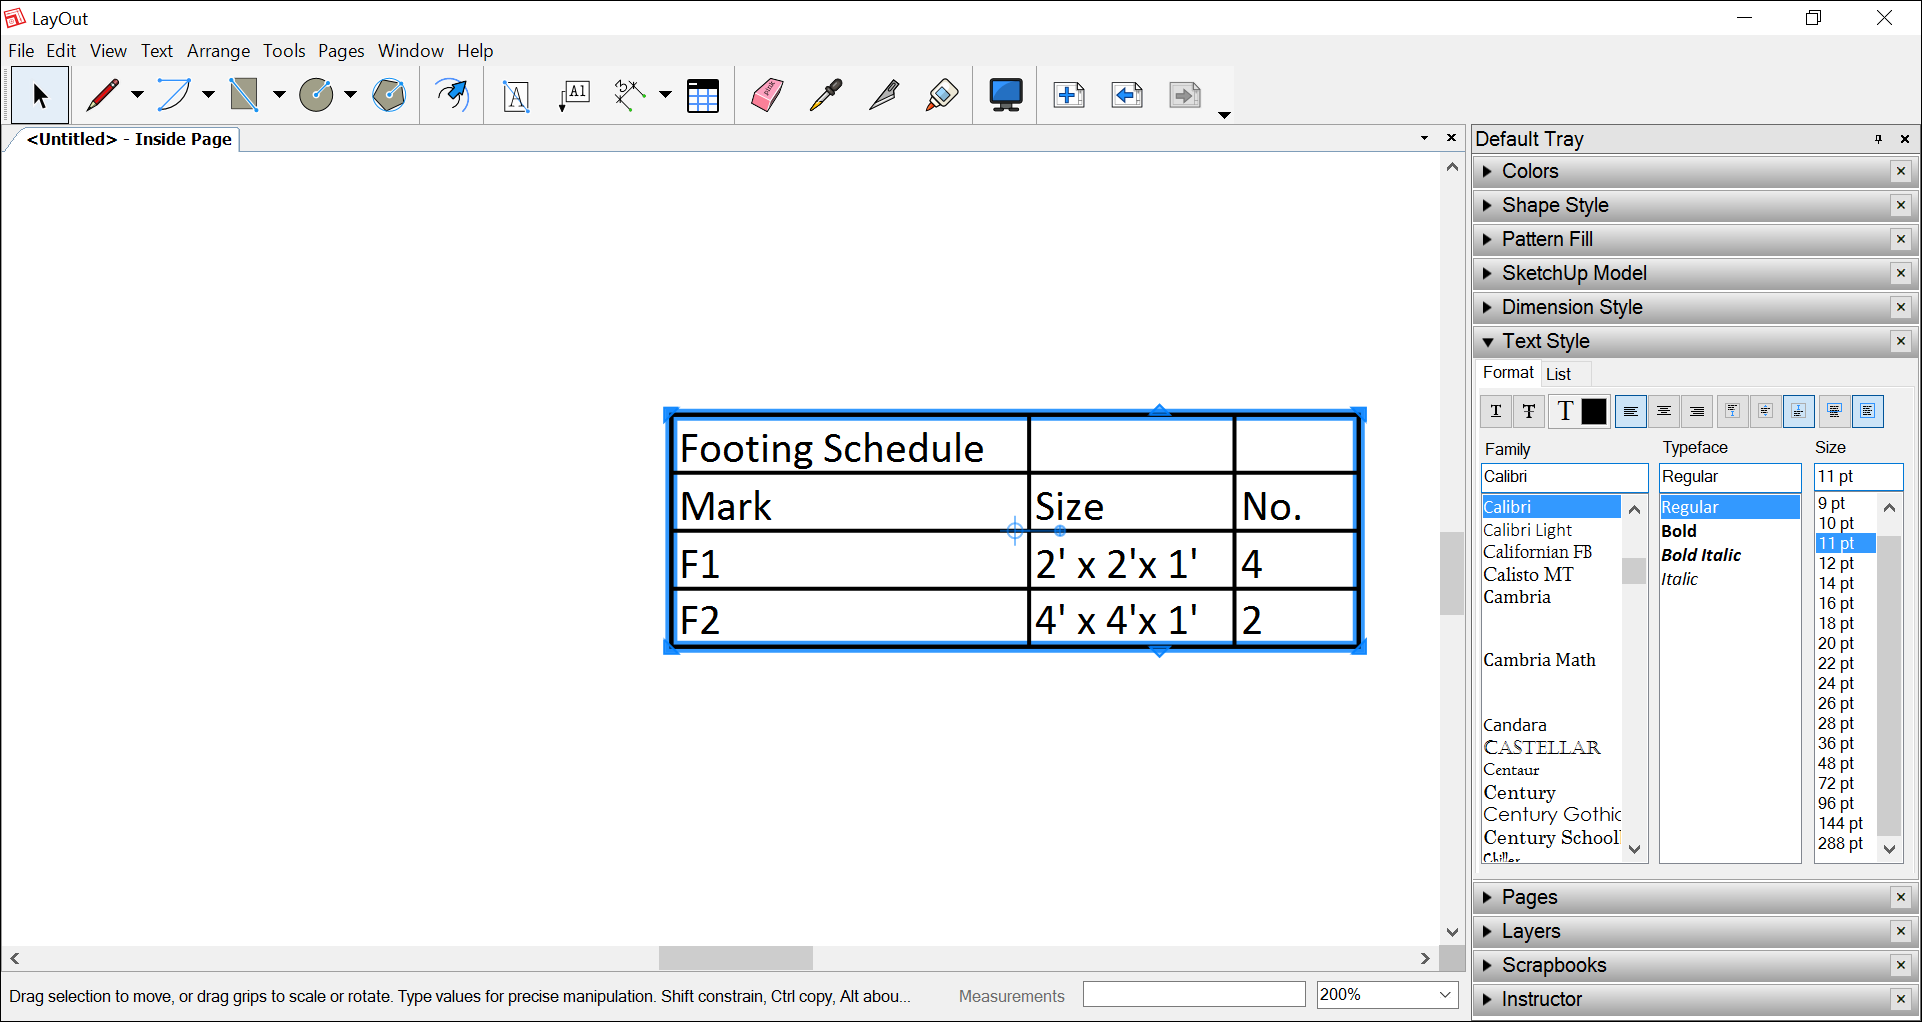 In LayOut, you can insert data from a spreadsheet as a table entity